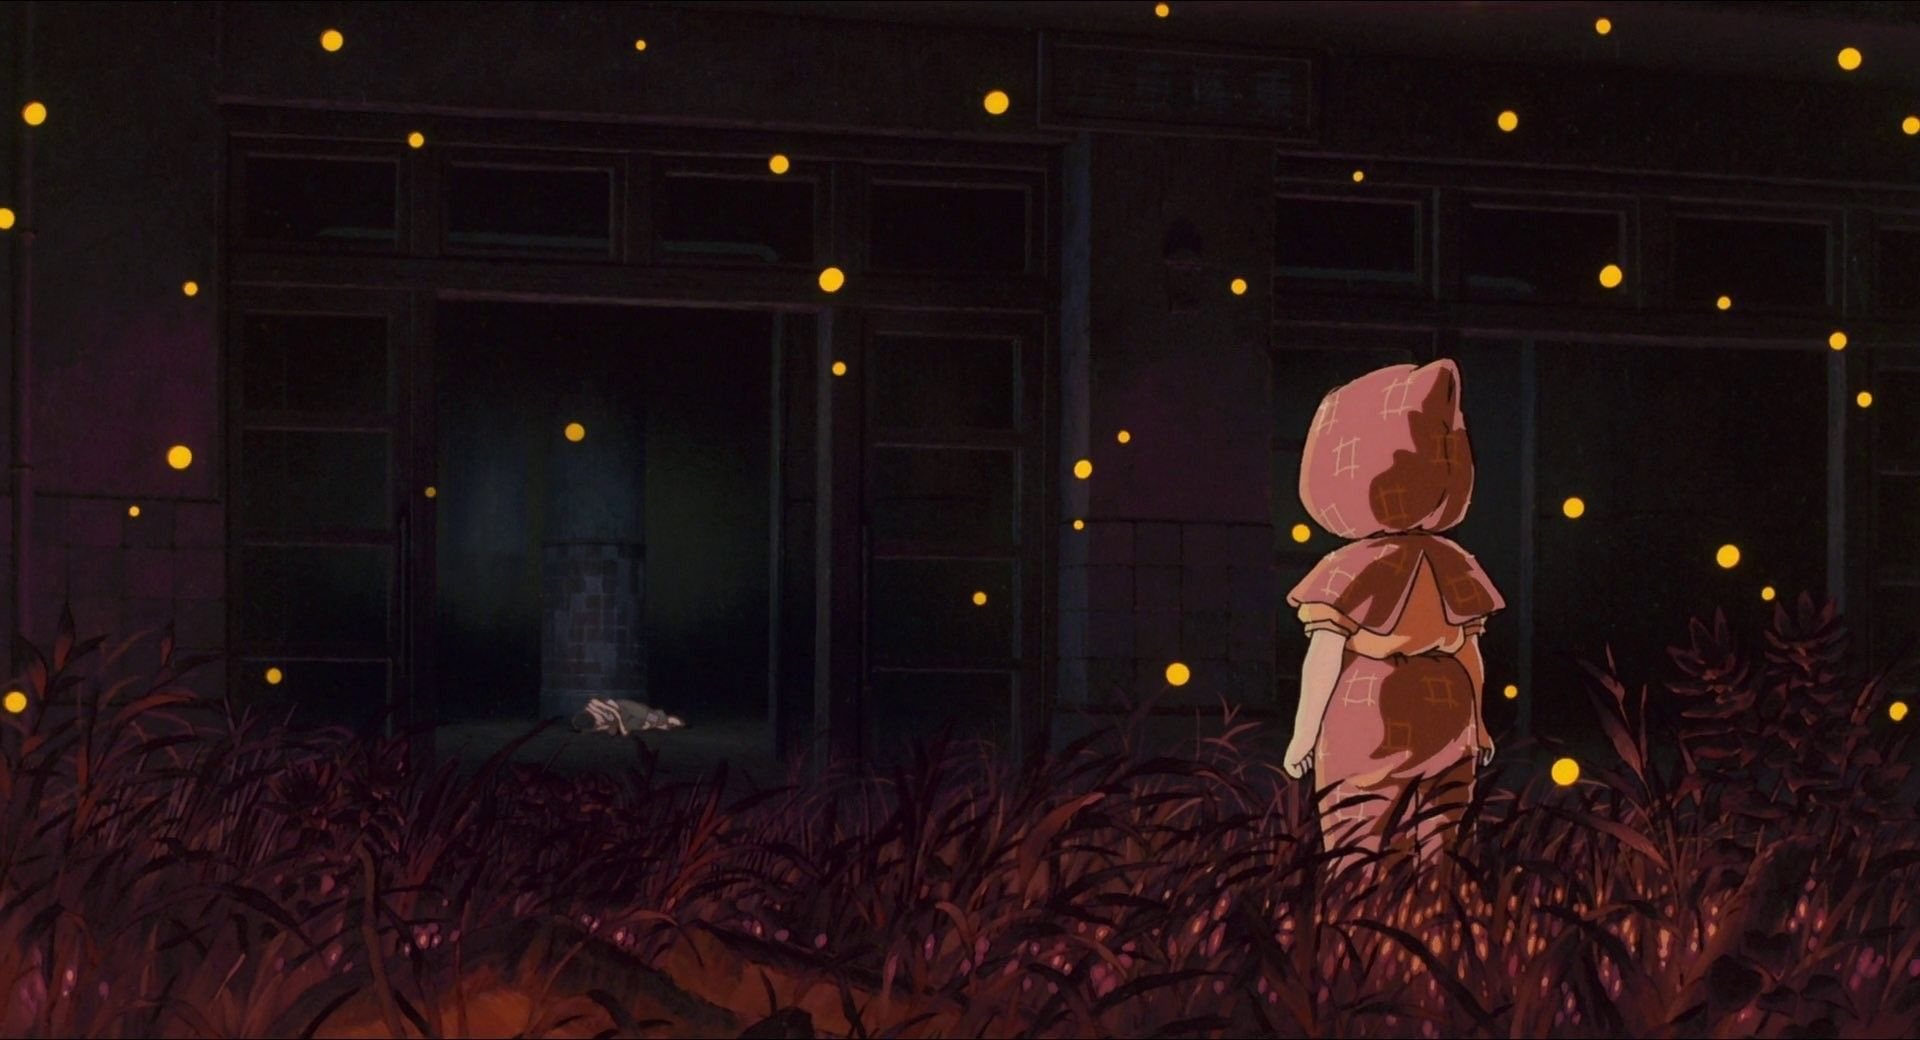 Pin by jametekudasai on grave of the fireflies in 2020